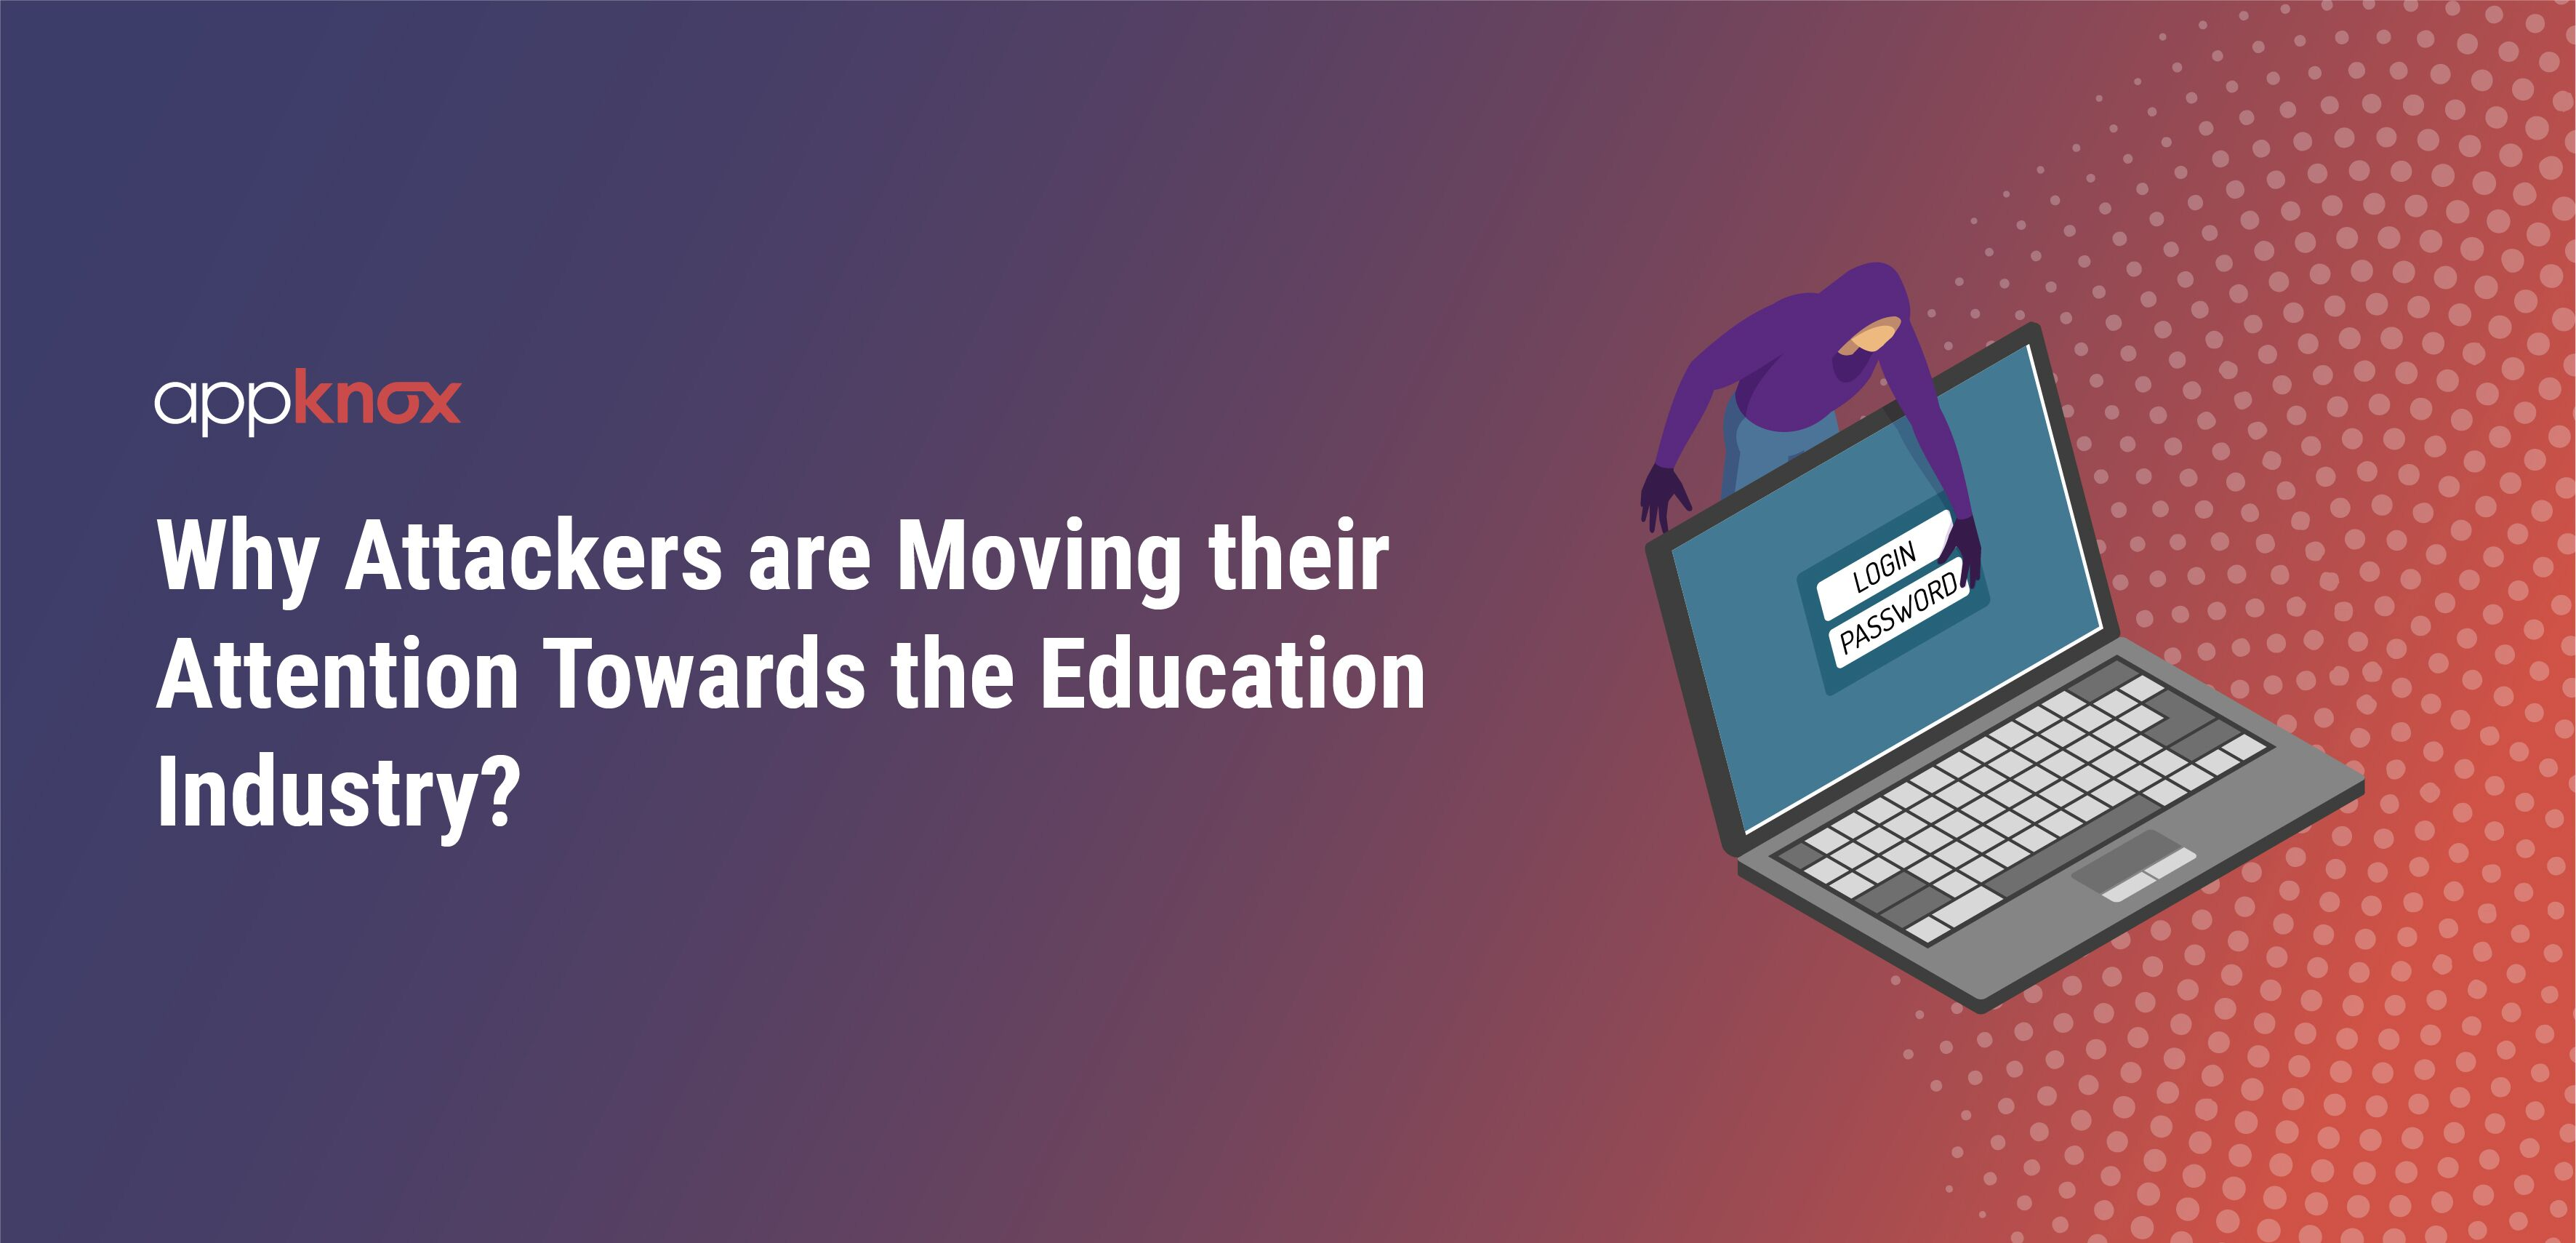 Why Attackers are Moving their Attention Towards the Education Industry